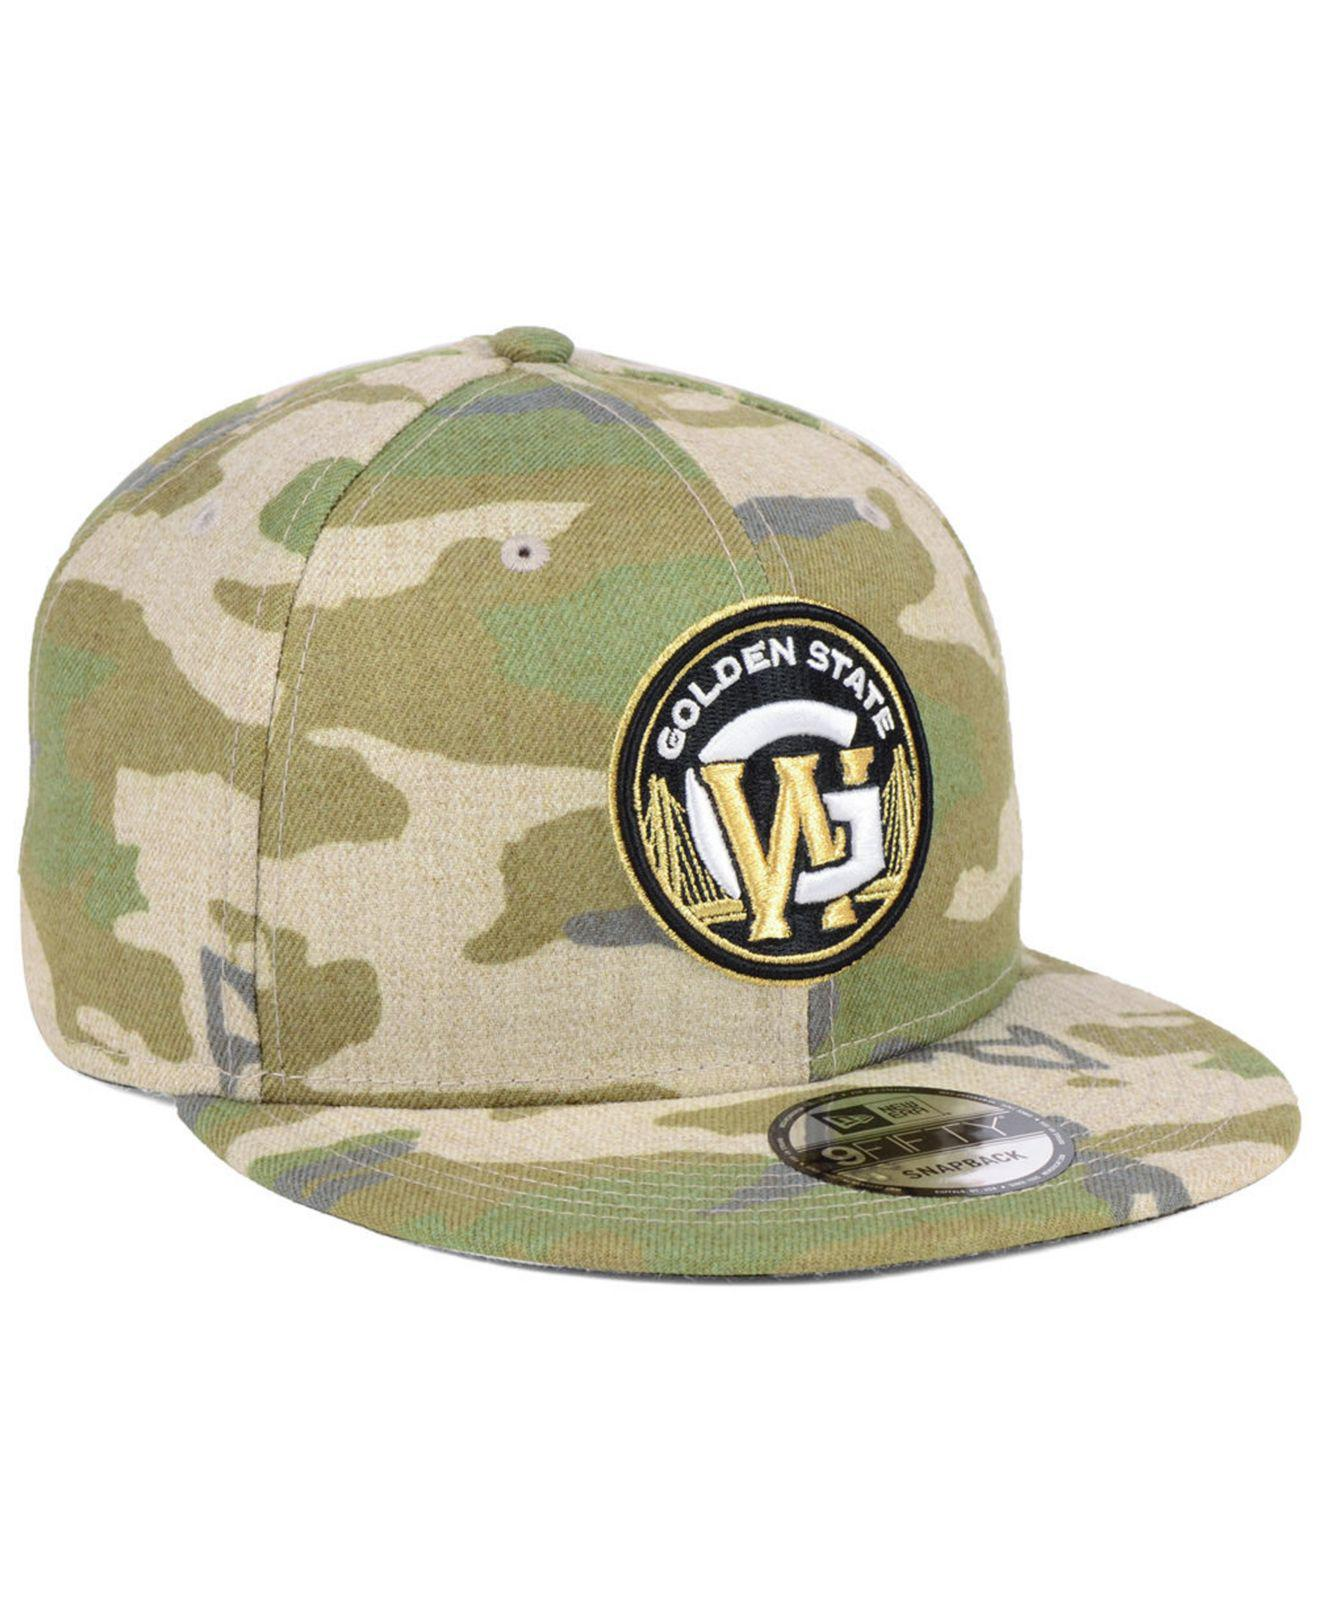 sale retailer 8ddd9 4cc98 ... clearance golden state warriors combo camo 9fifty snapback cap for men  lyst. view fullscreen 61369